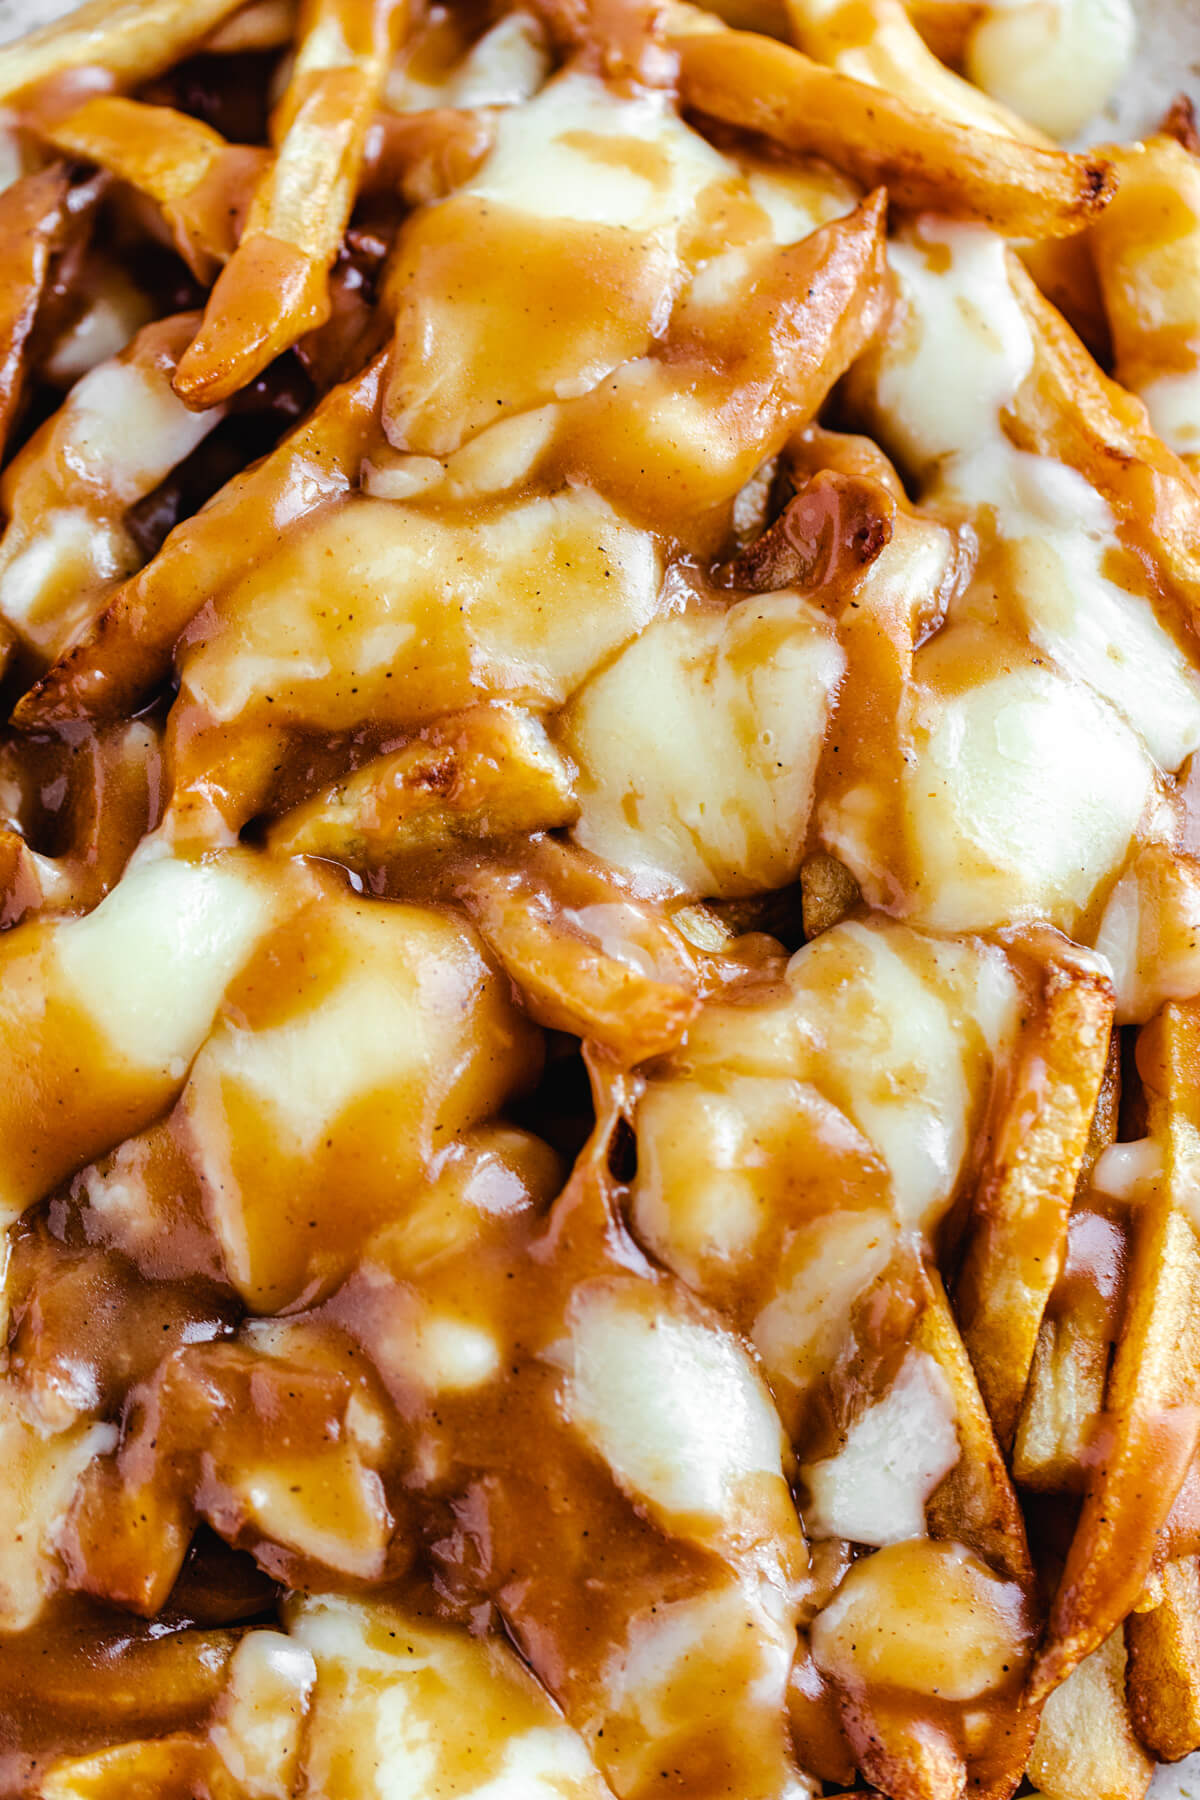 close up view of fries, melted cheese curds and gravy